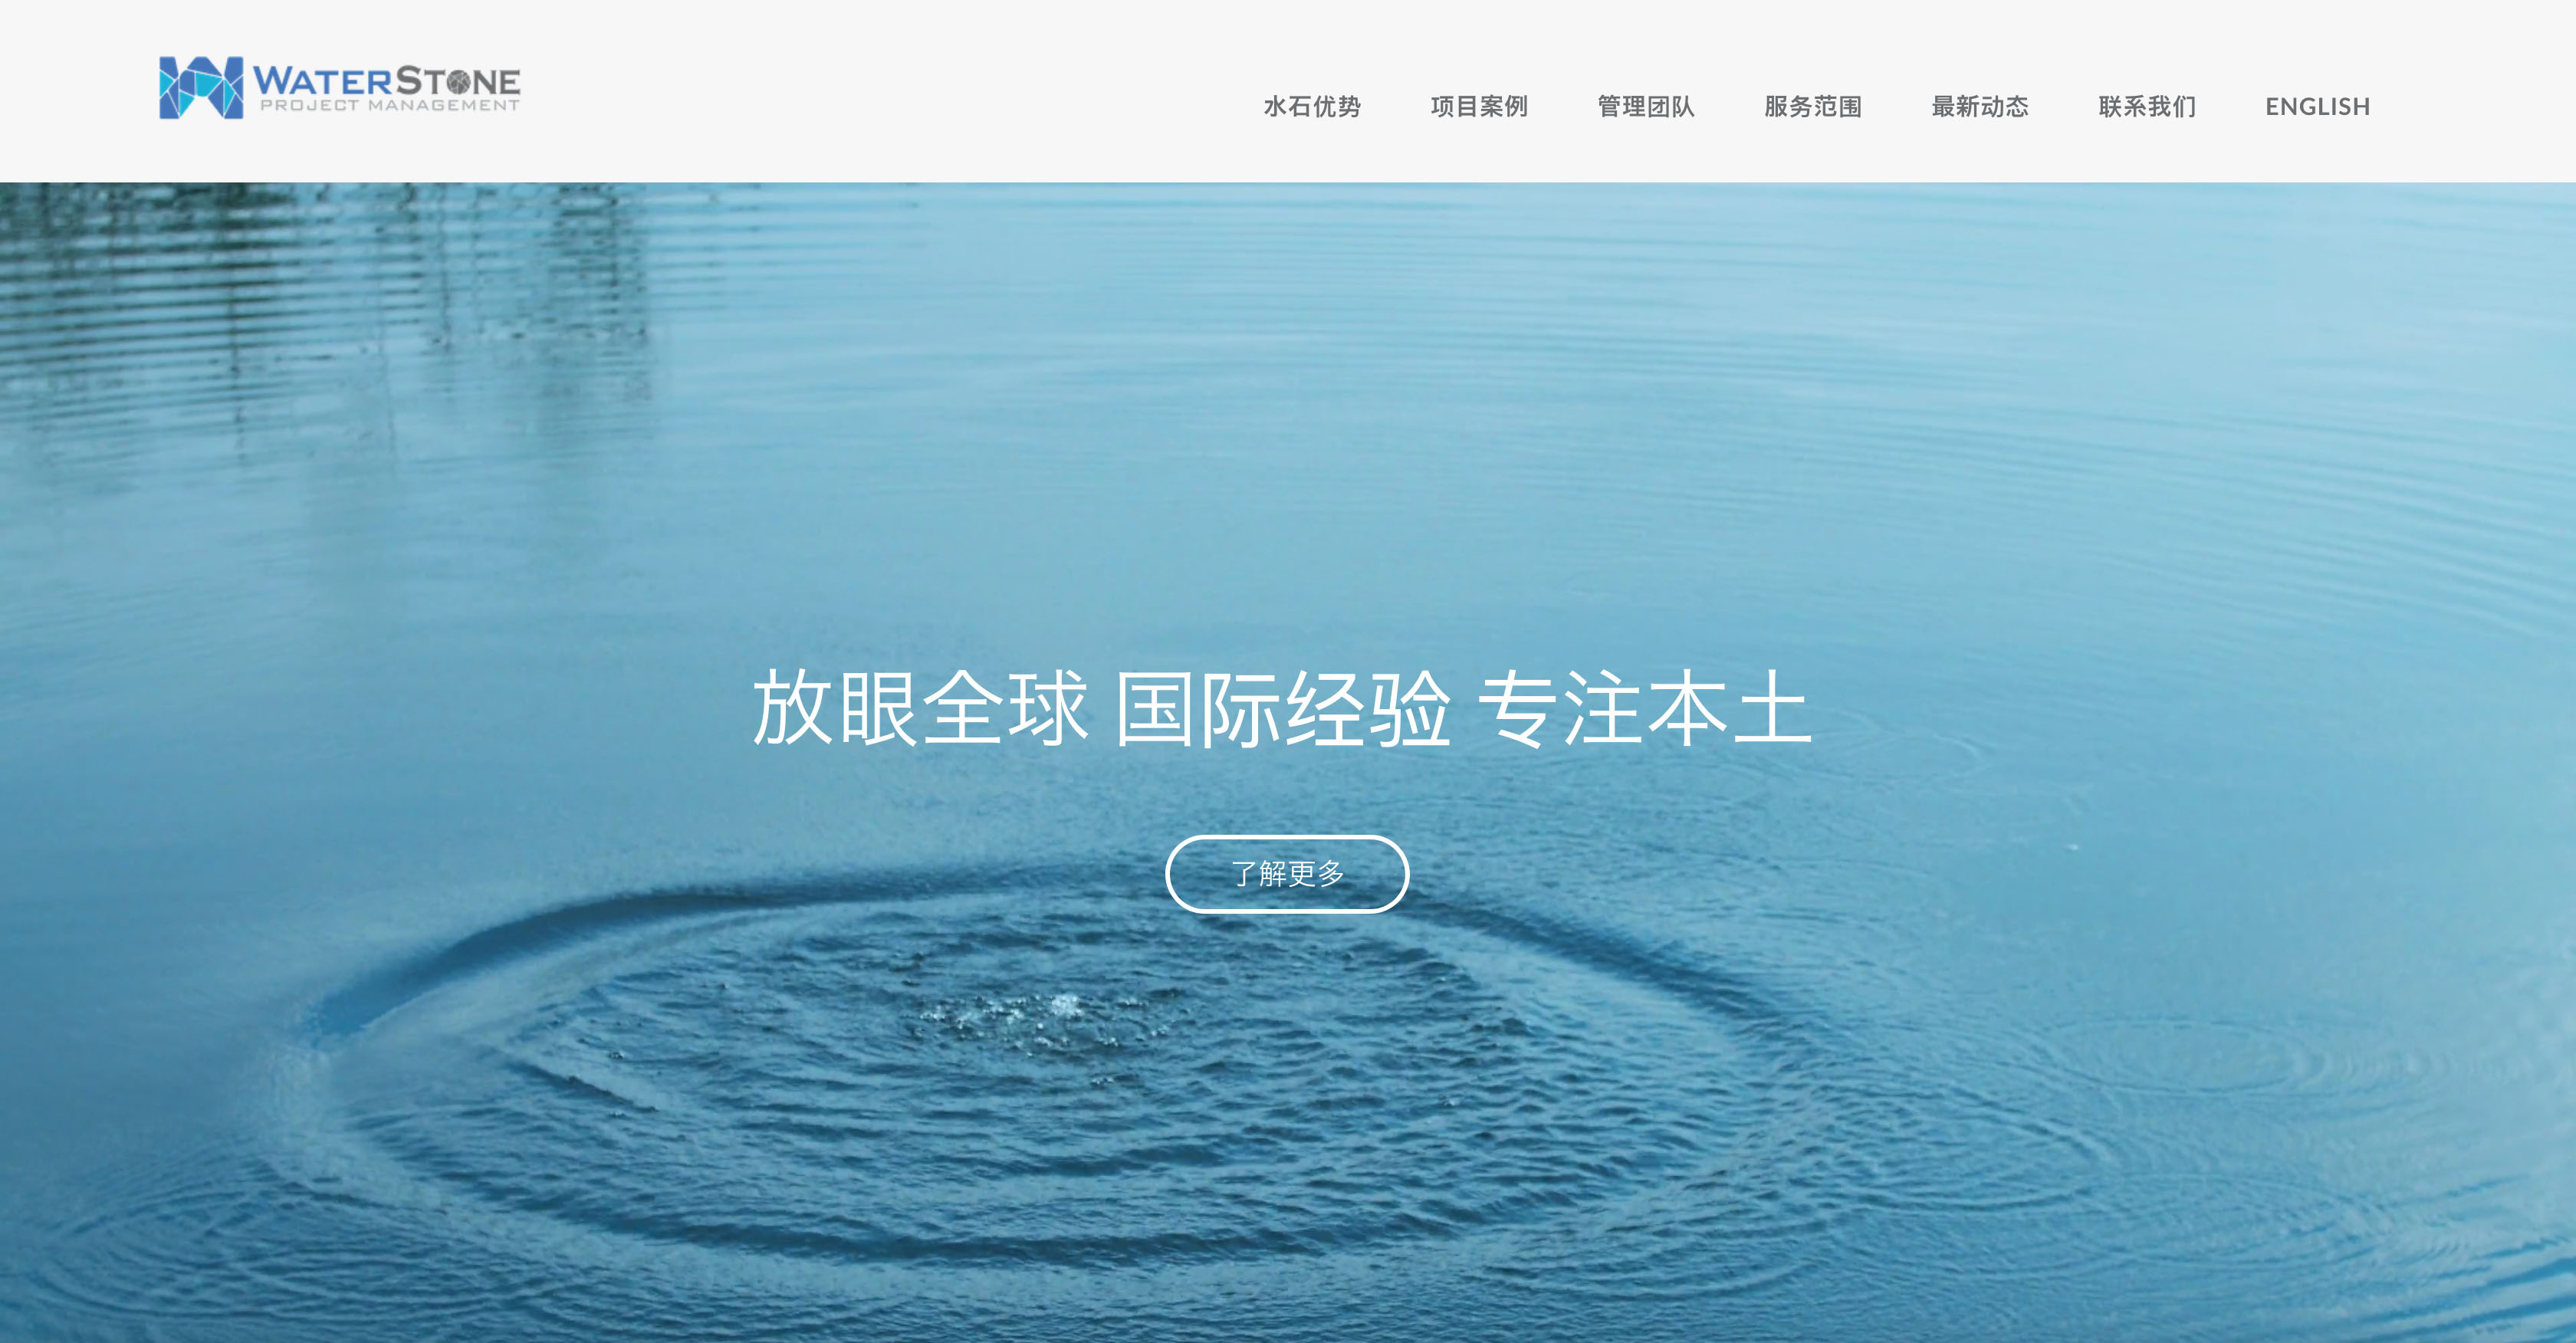 Chinese - Waterstone Project Management